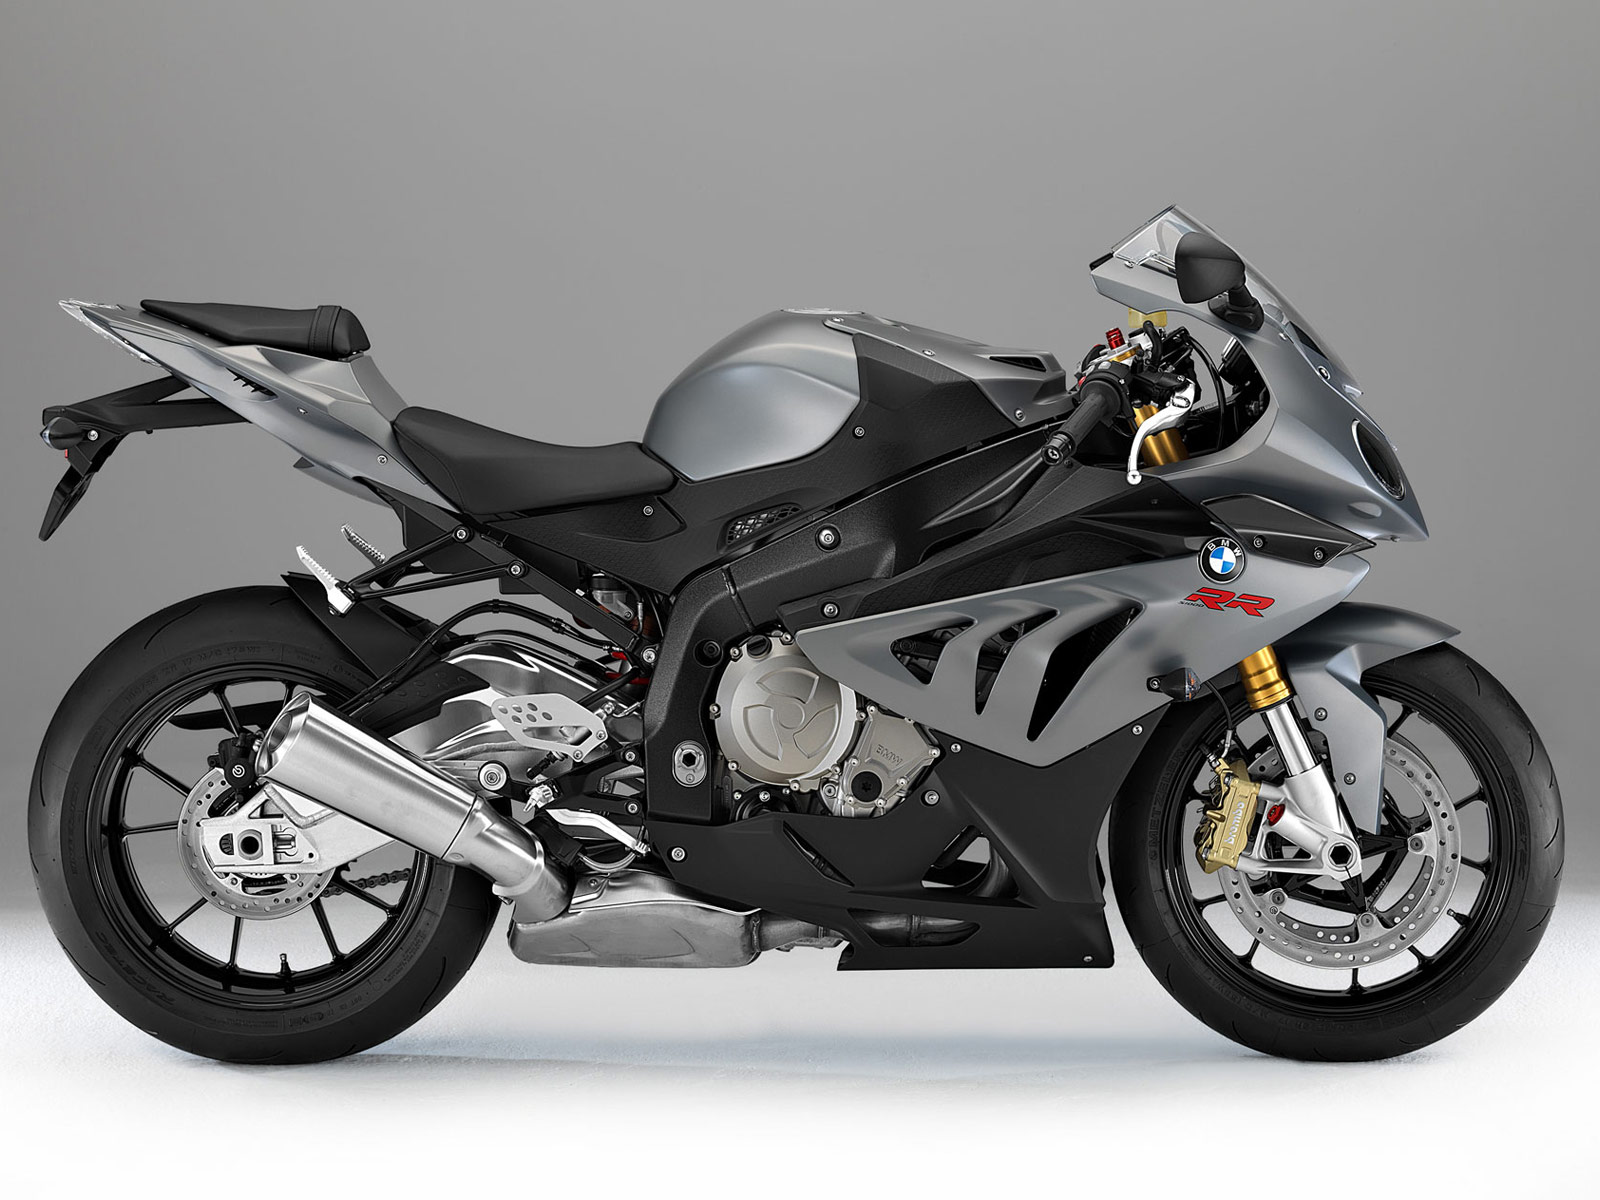 2013 Bmw S1000rr Motorcycle Insurance Information